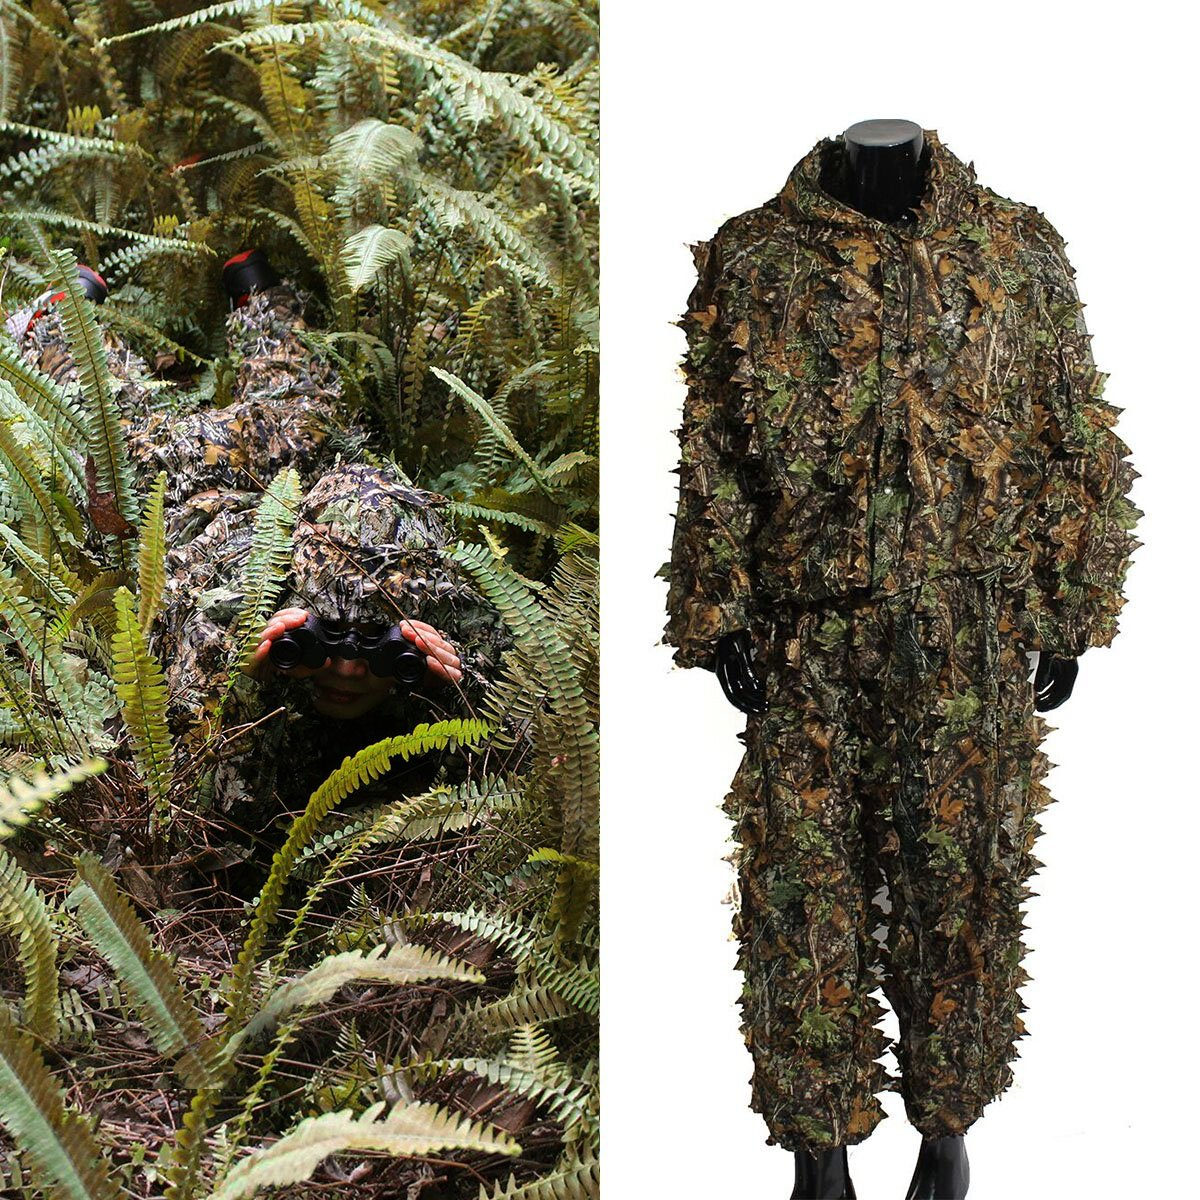 Ghillie Suit, OUTERDO Camo Suit Woodland and Forest Design Militare Foglia Caccia e tiro Accessori Tattico Abbigliamento mimetico Taglie gratis per Airsoft, Fotografia naturalistica di Halloween o Nat